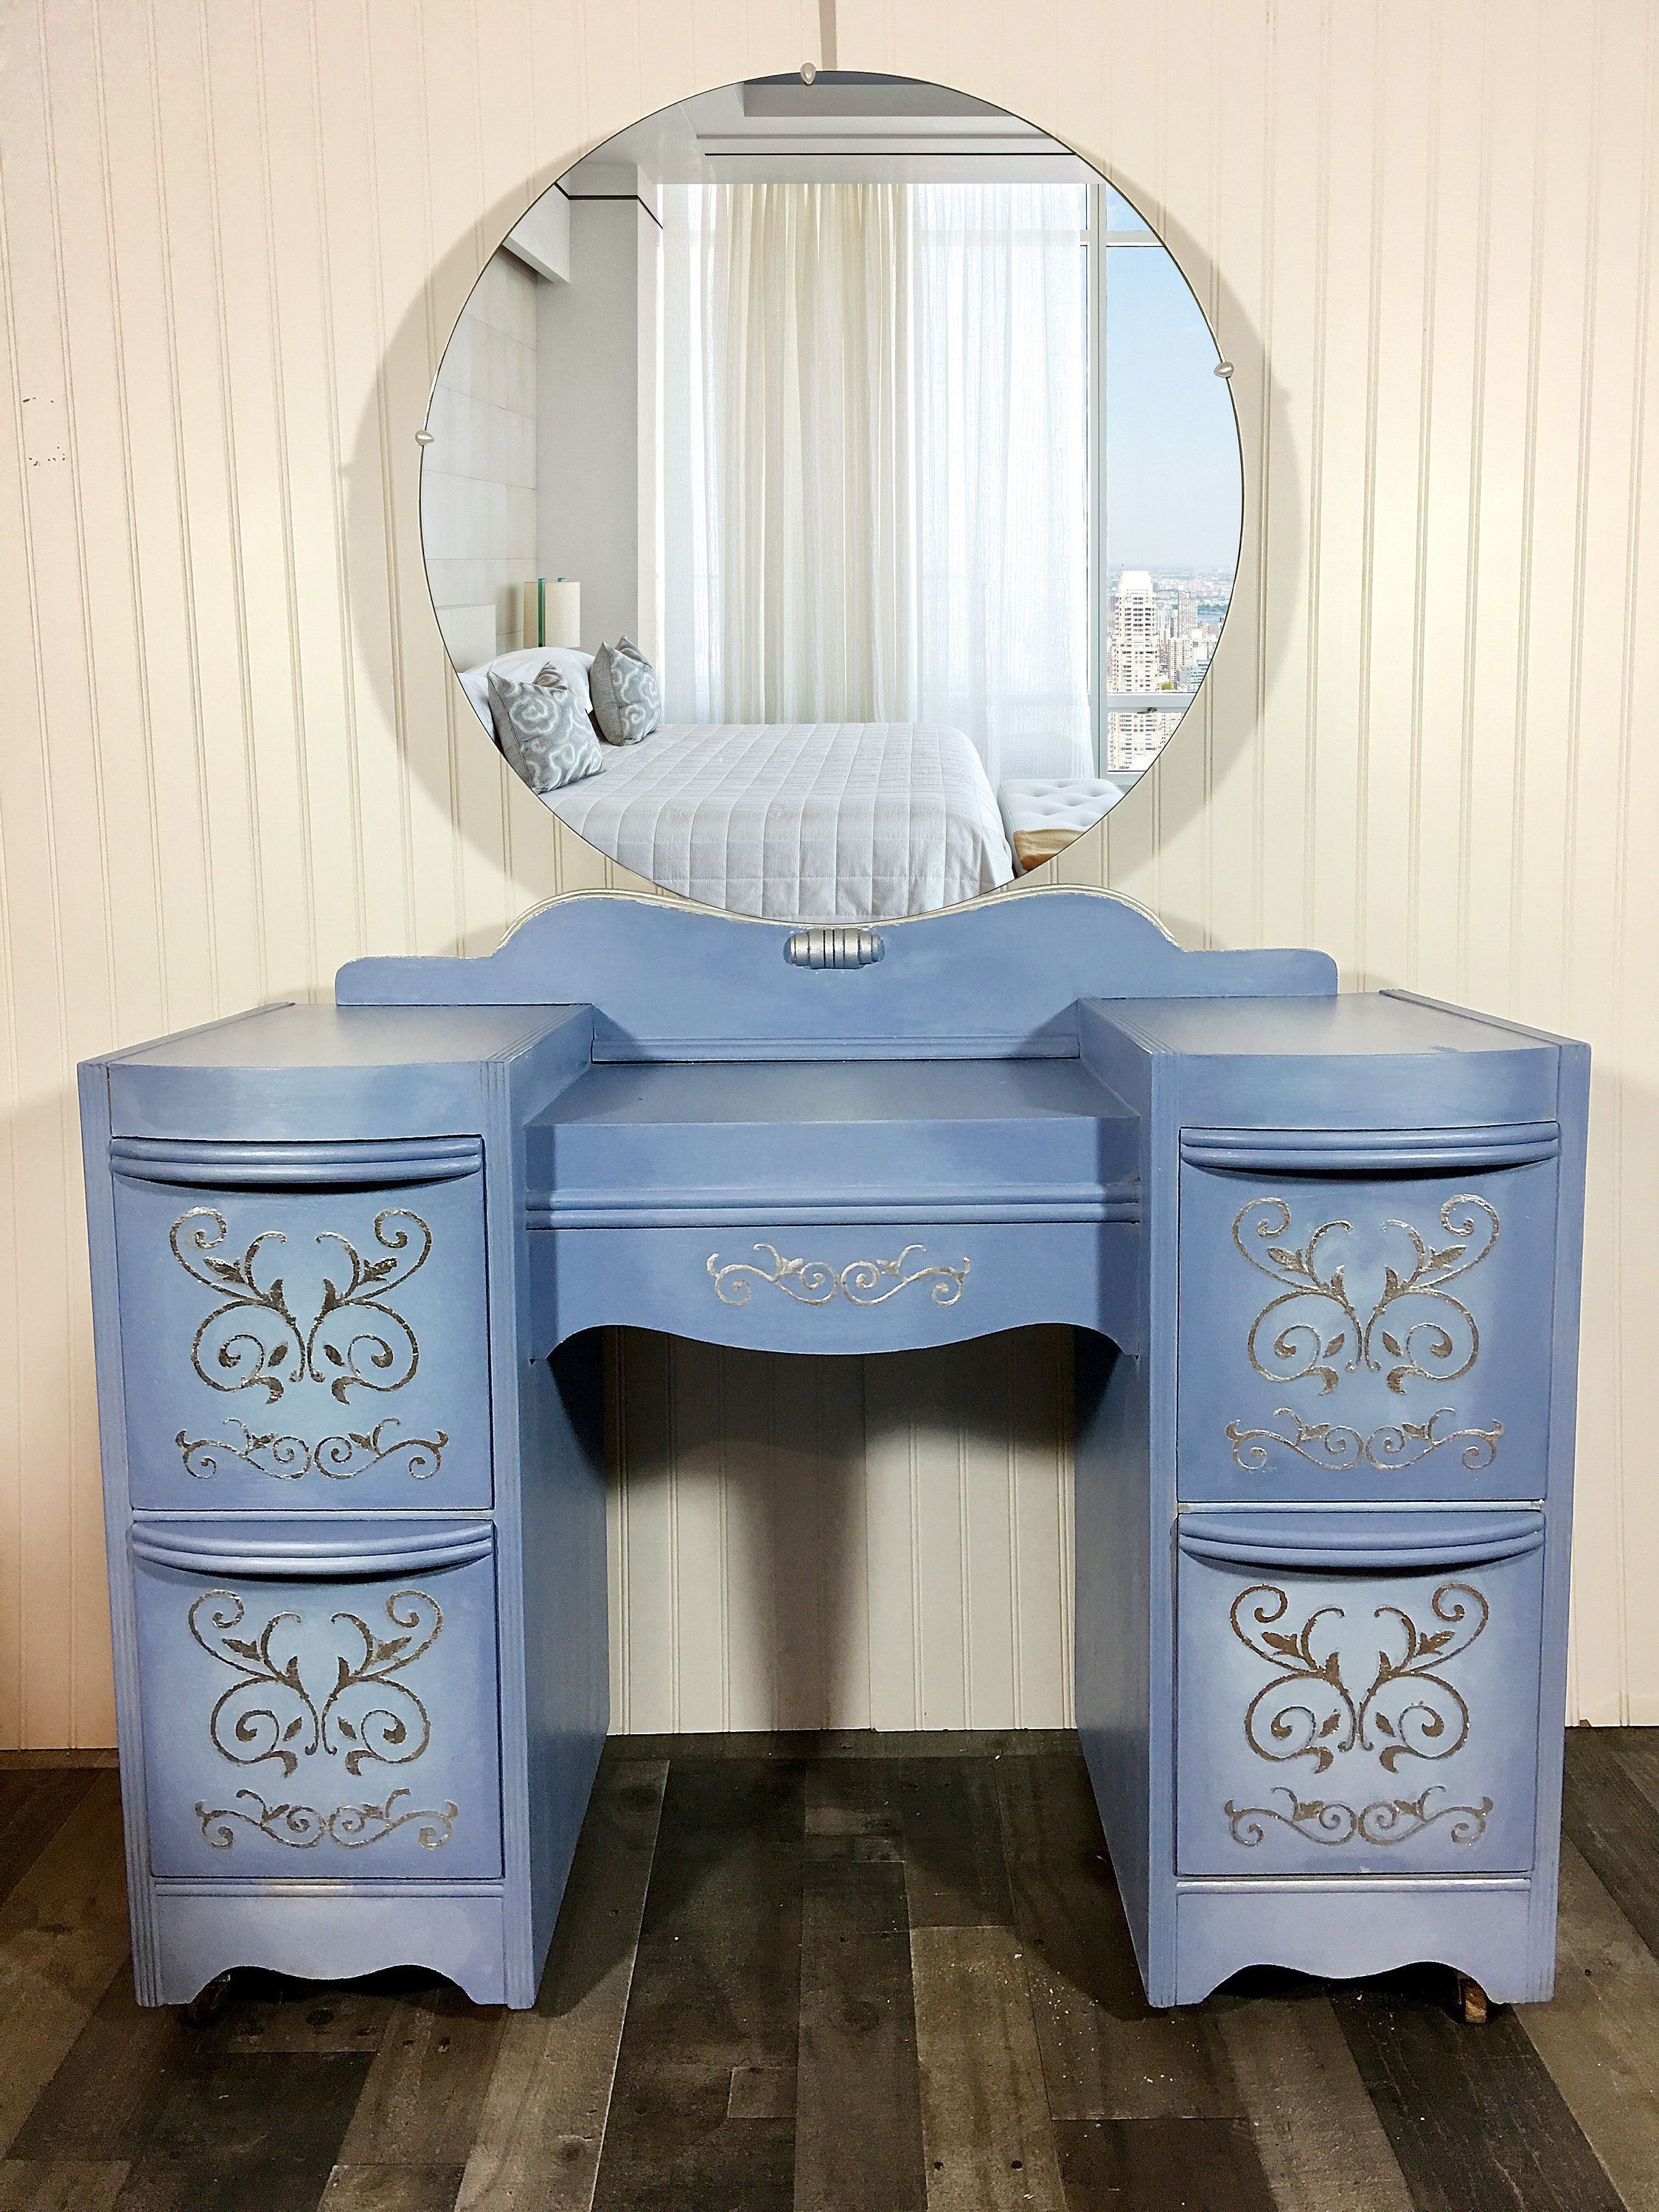 Sold vintage vanity upcycled in blended blues and silver leaf